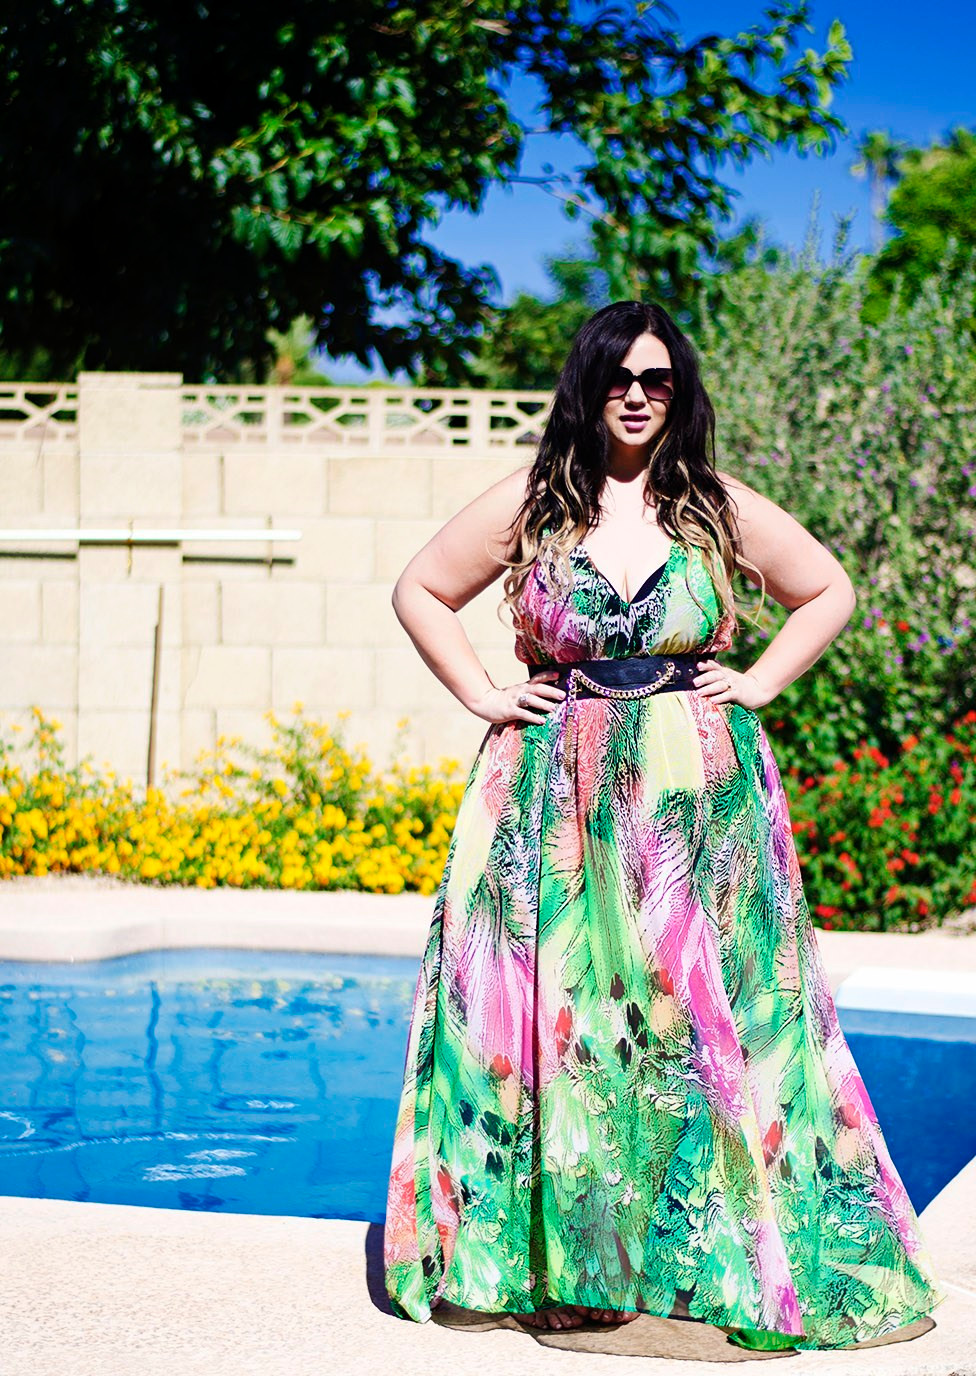 plus size maxi dress swimsuit simply be zelie for she simplybe elann zelie plus swimsuit